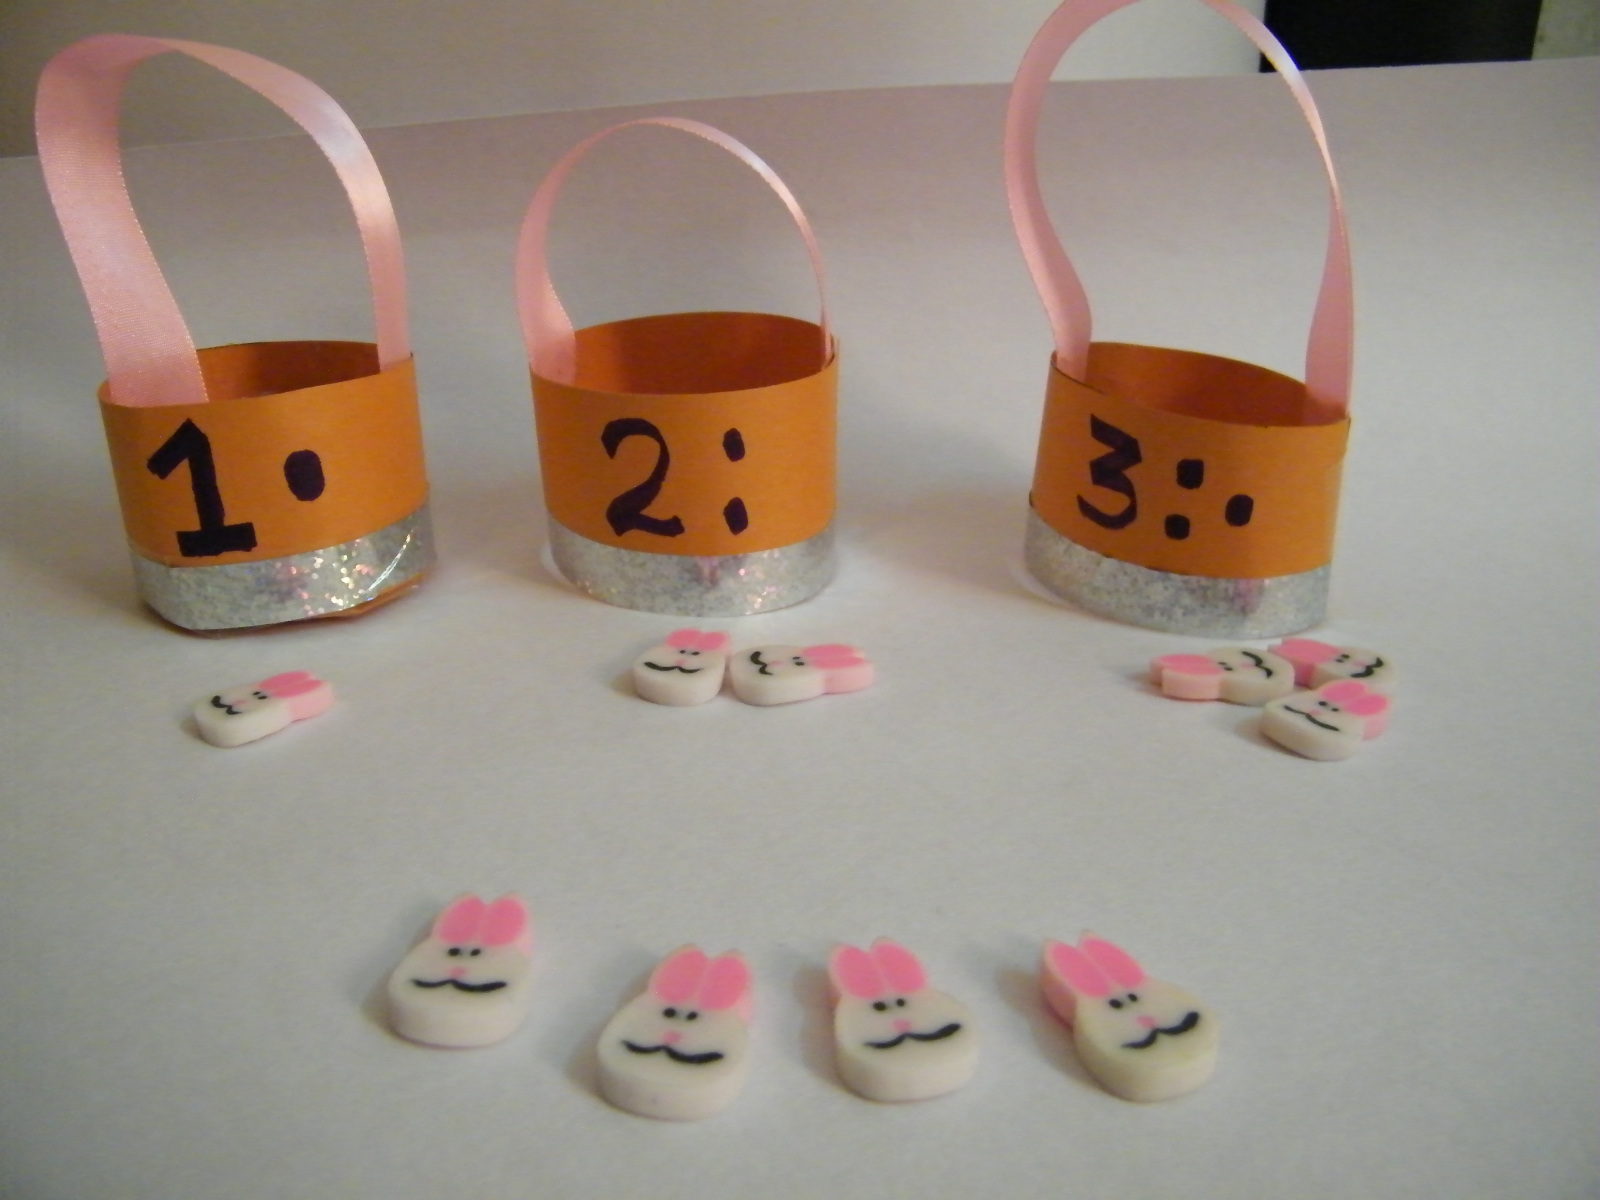 Buckeye Craft Ideas http://buckeyedulcimerfestival.com/bd-craft-ideas-for-preschoolers.php